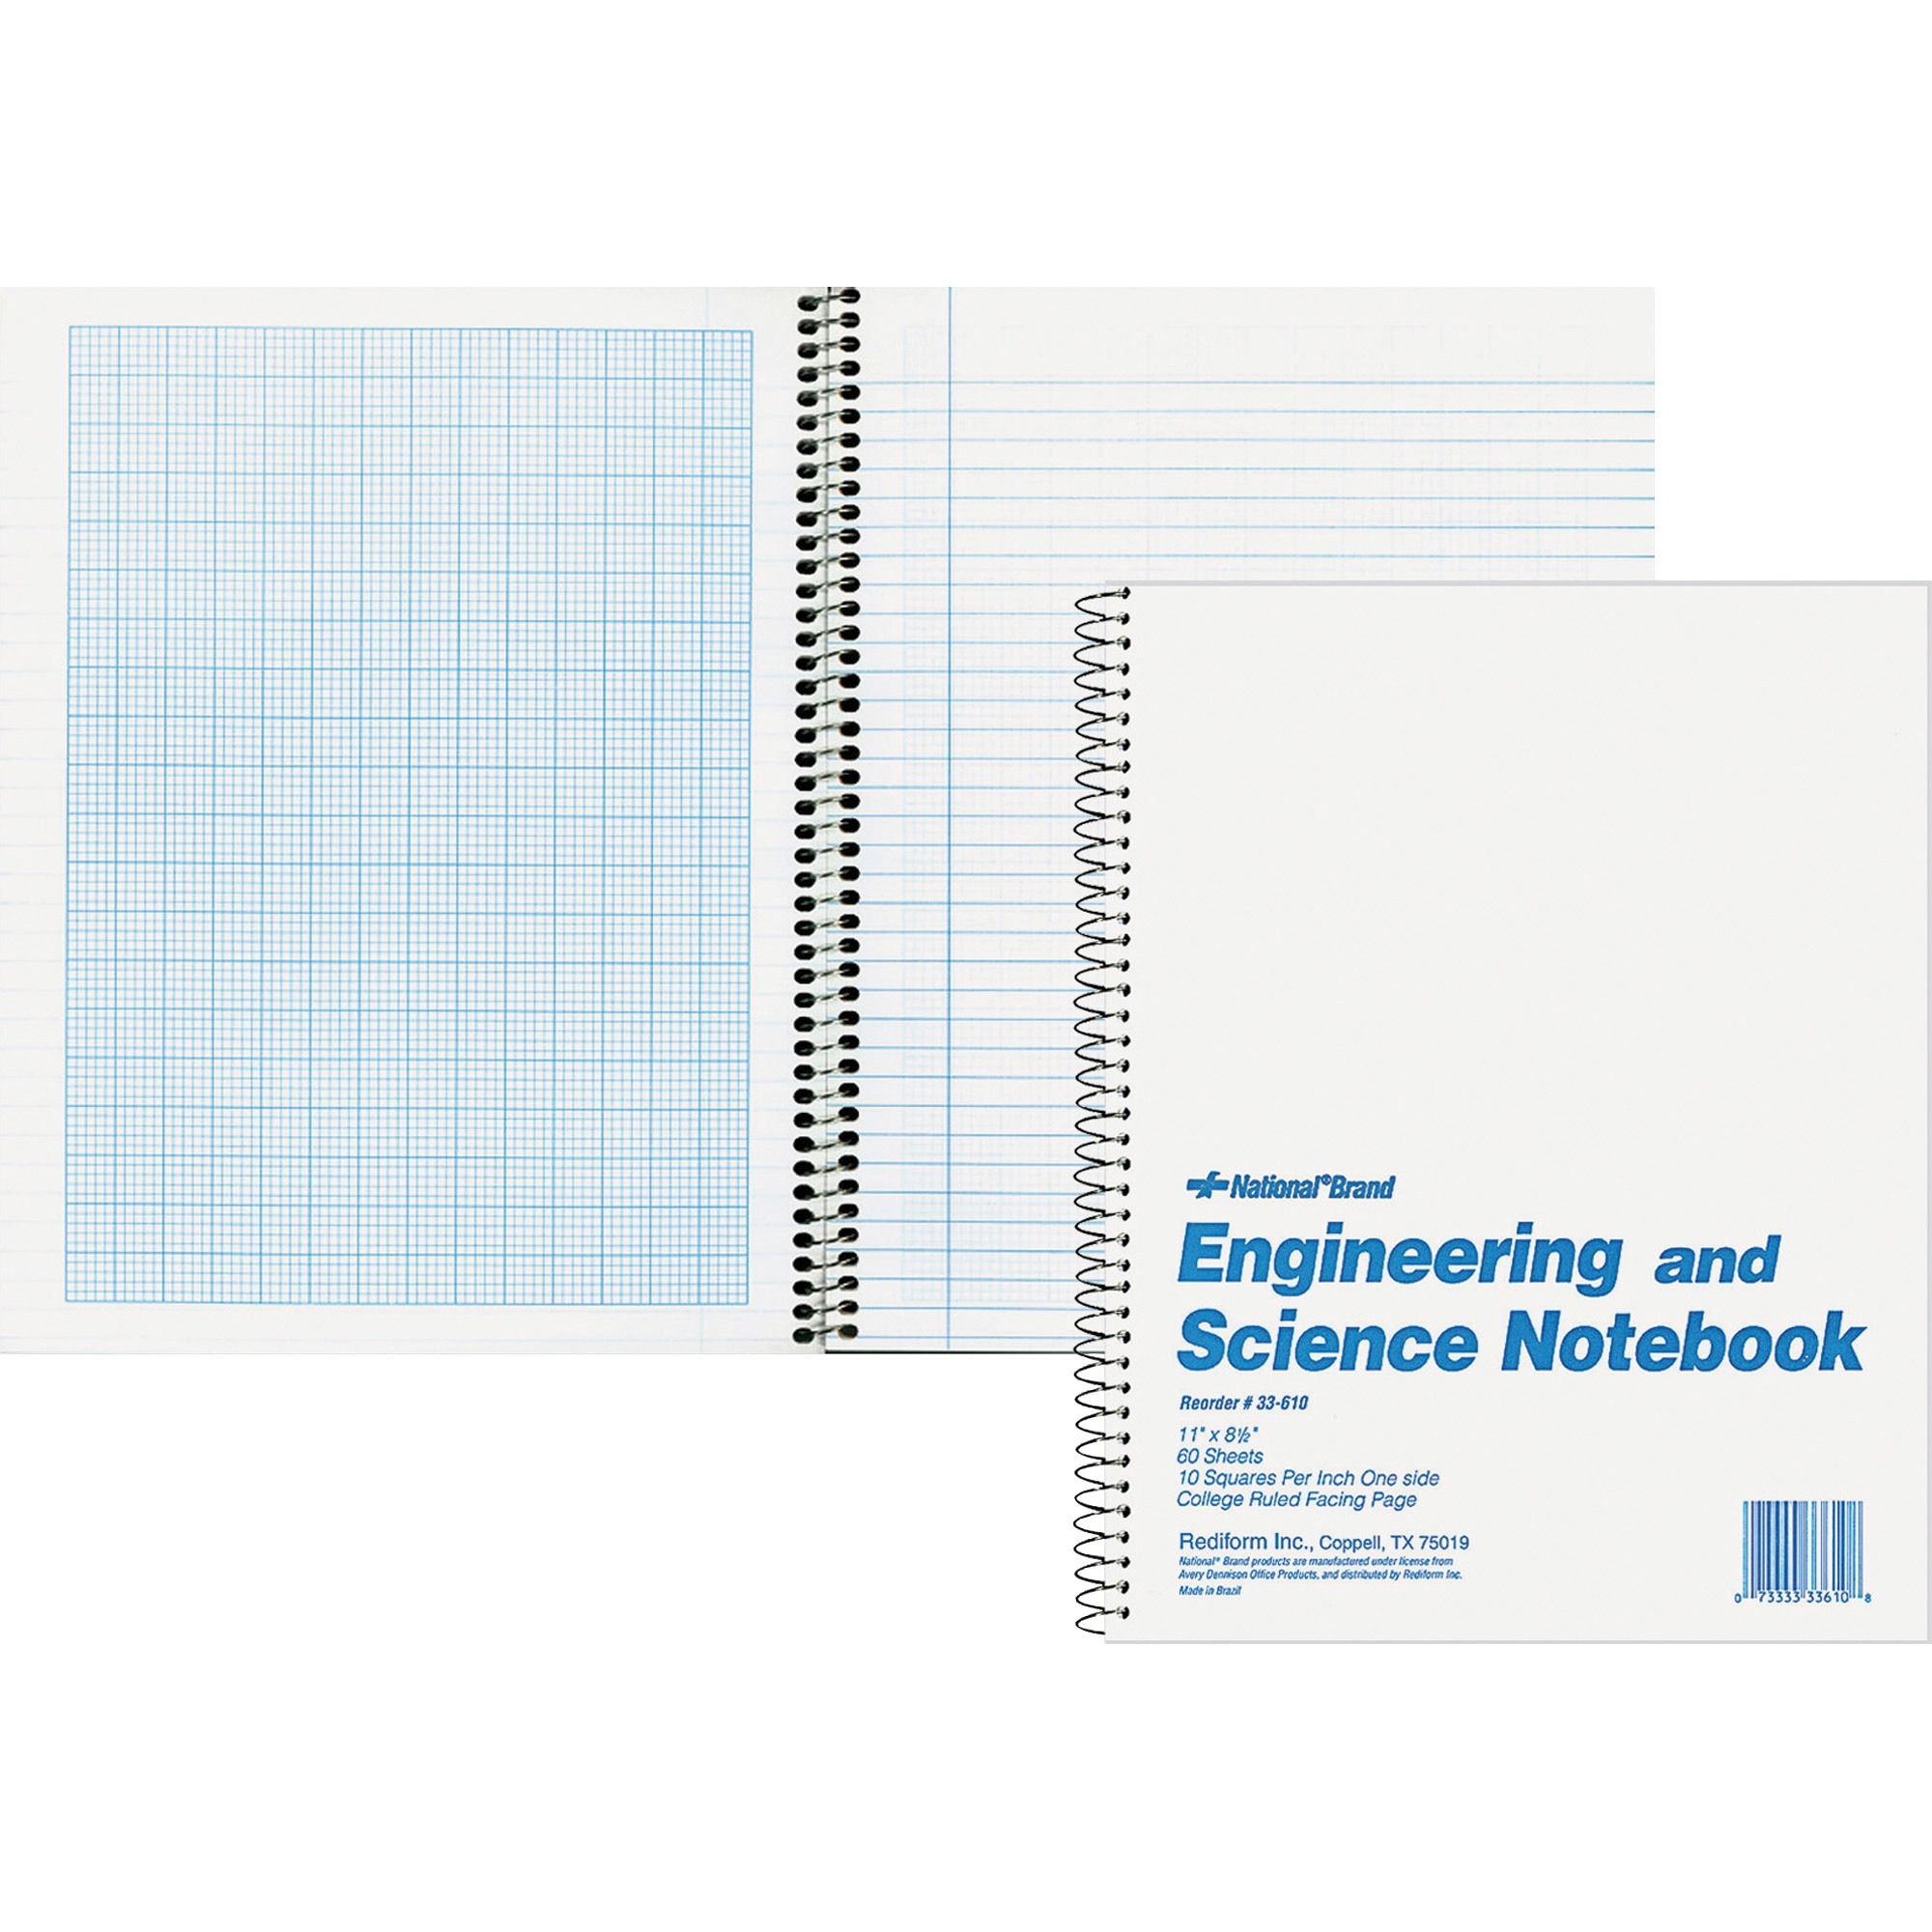 Rediform, RED33610, Engineering and Science Notebook - Letter, 1 Each